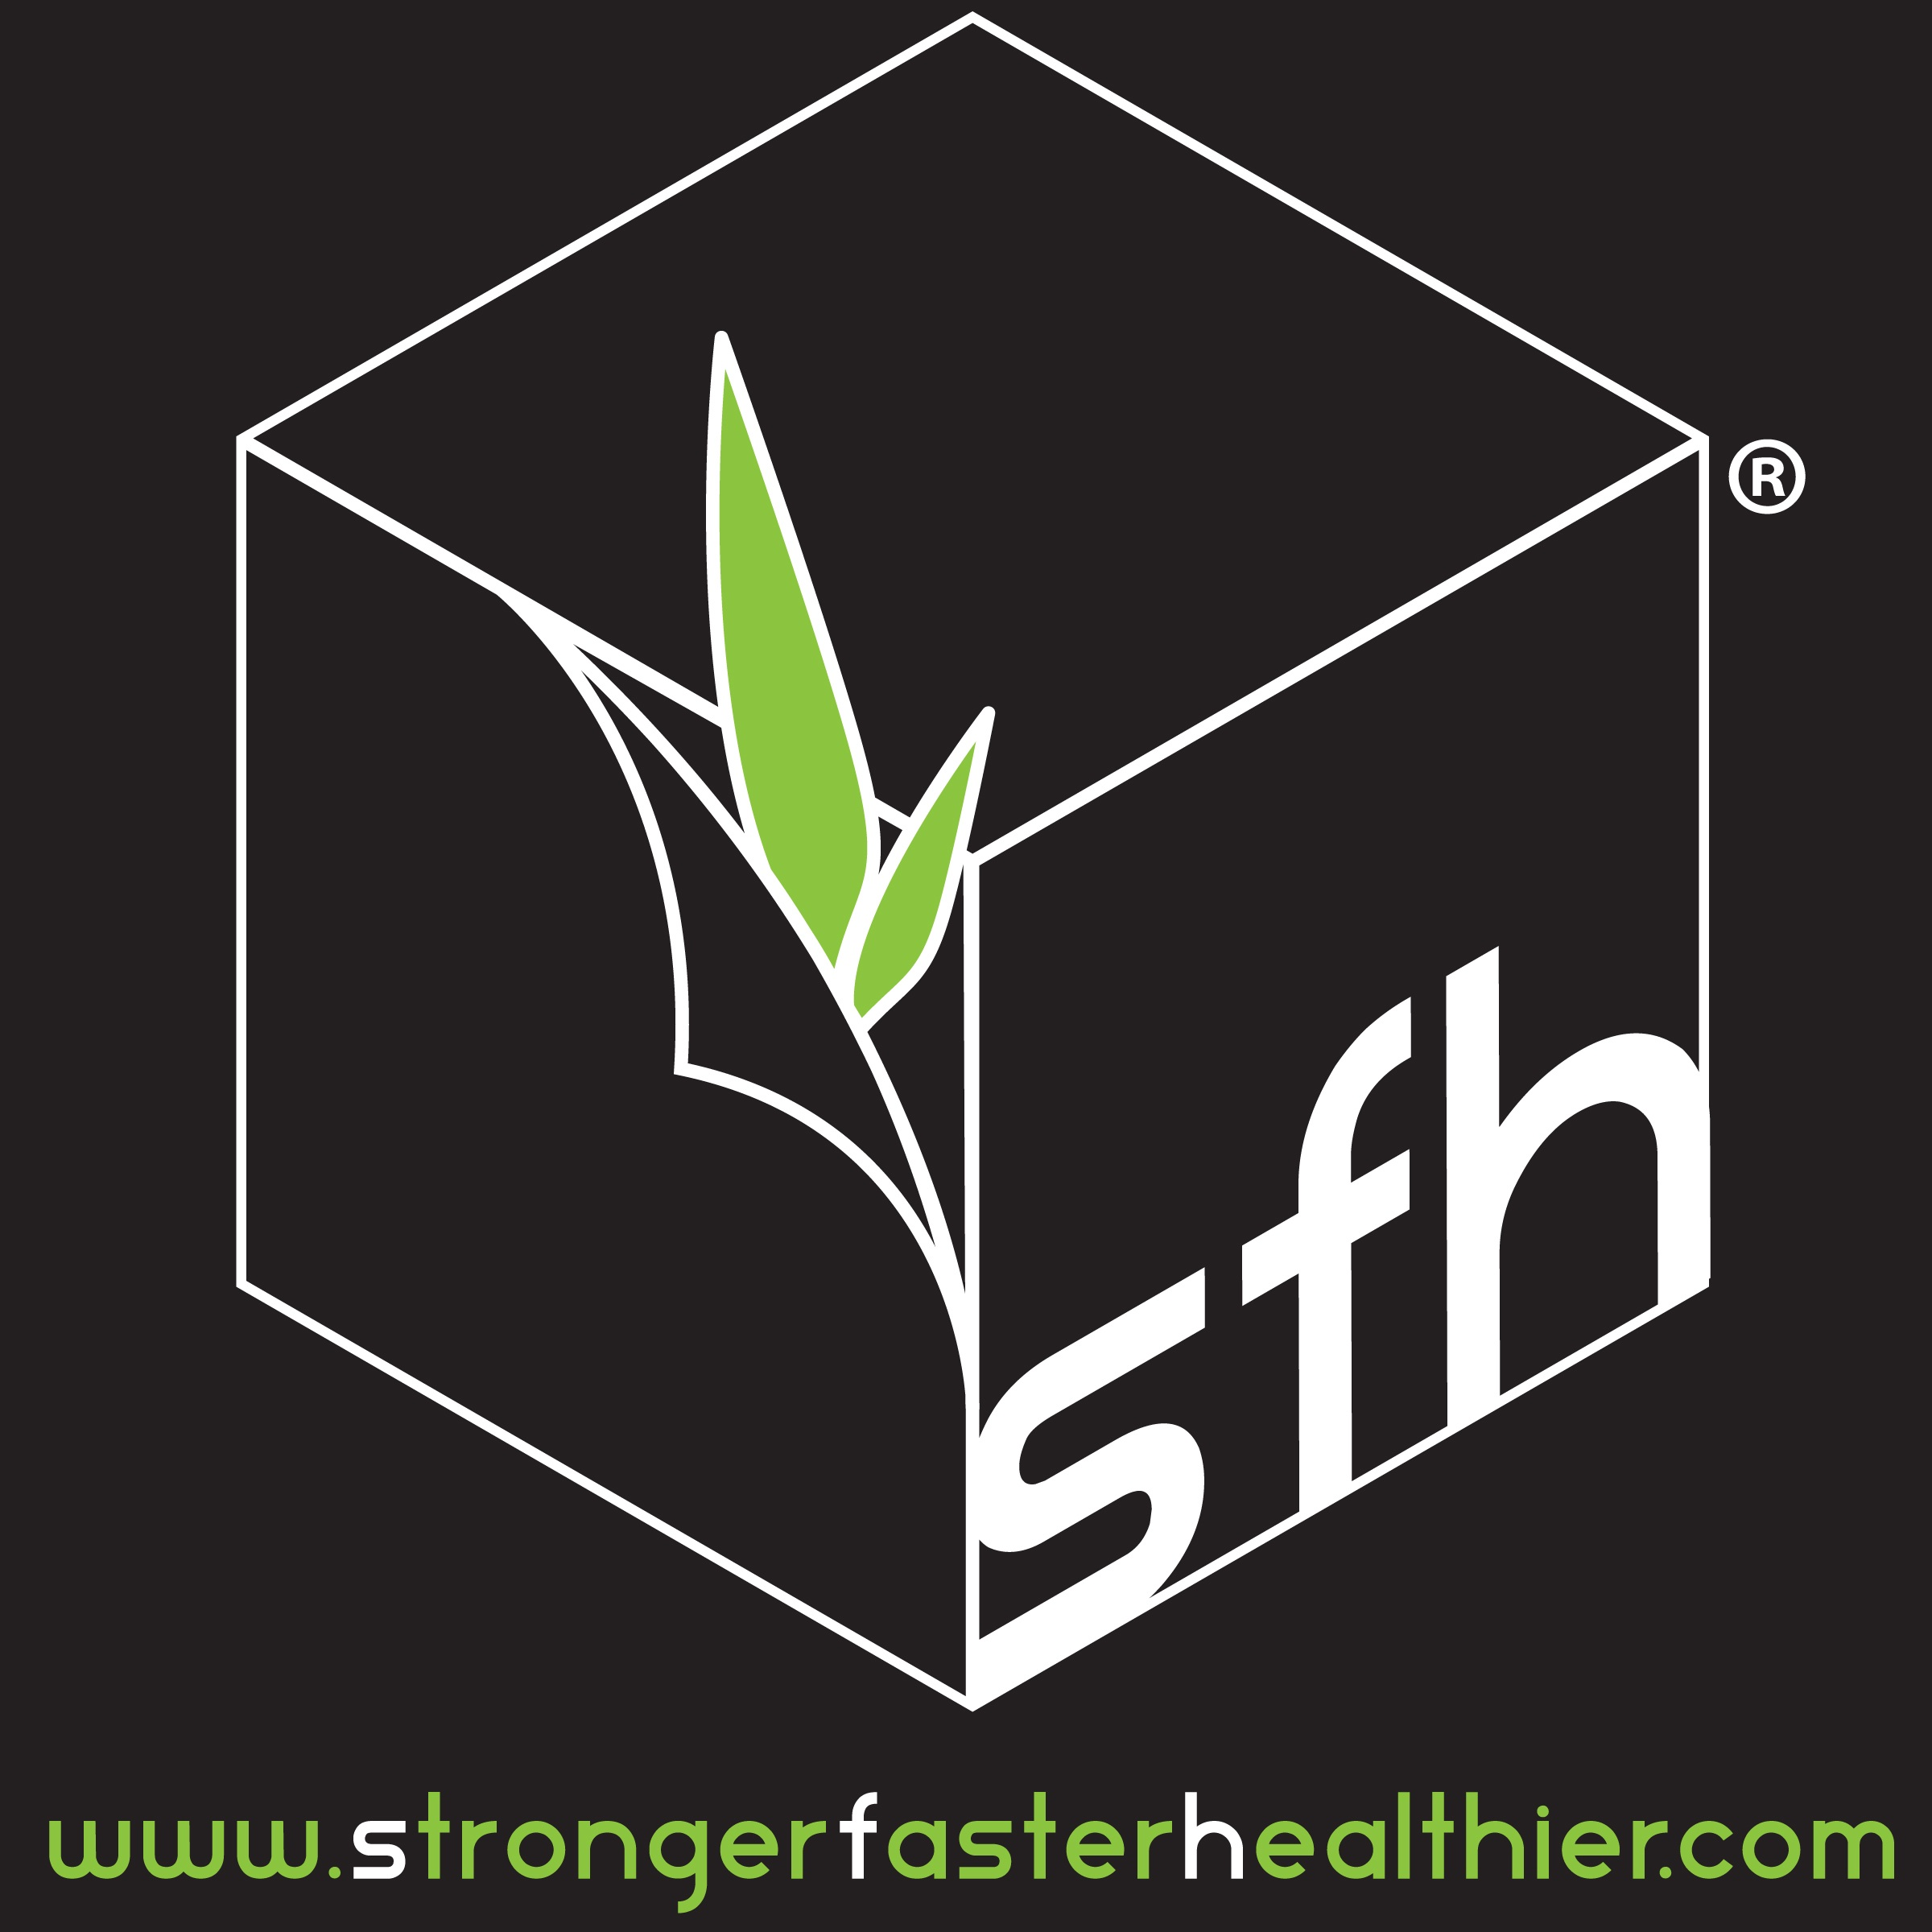 Stronger. Faster. Healthier. now available to order through CFG